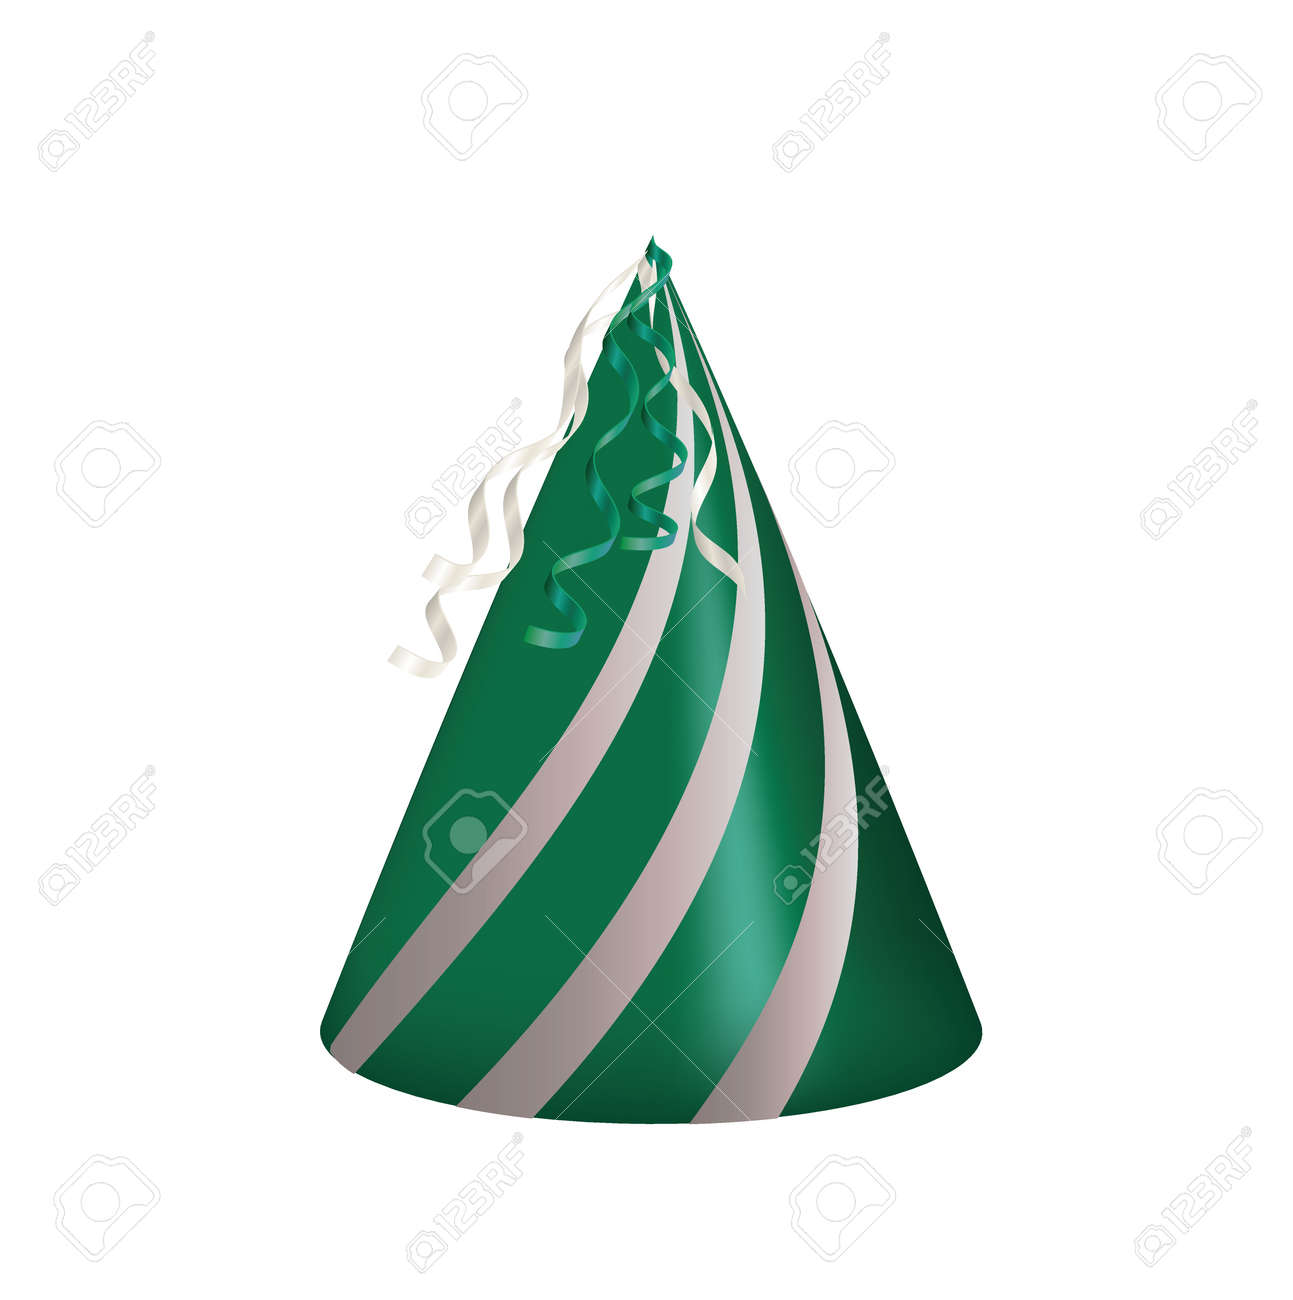 Green party hat. vector illustration - 162082692